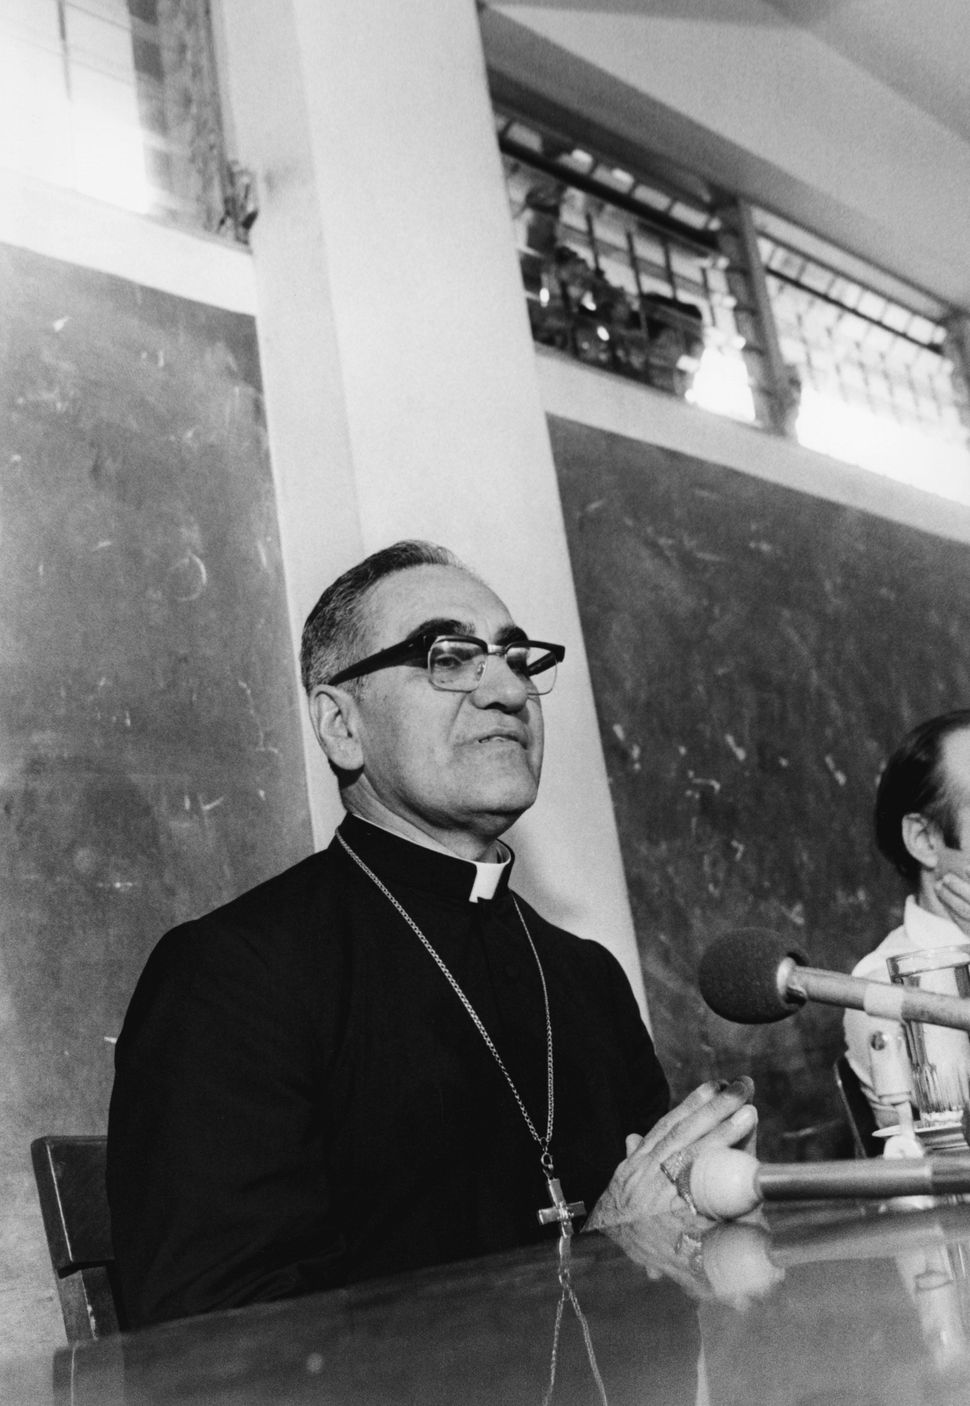 Jan 1, 1979 - San Salvador, El Salvador - EXCLUSIVE - The martyr Archbishop Oscar Romero of El Salvador speaks with the press